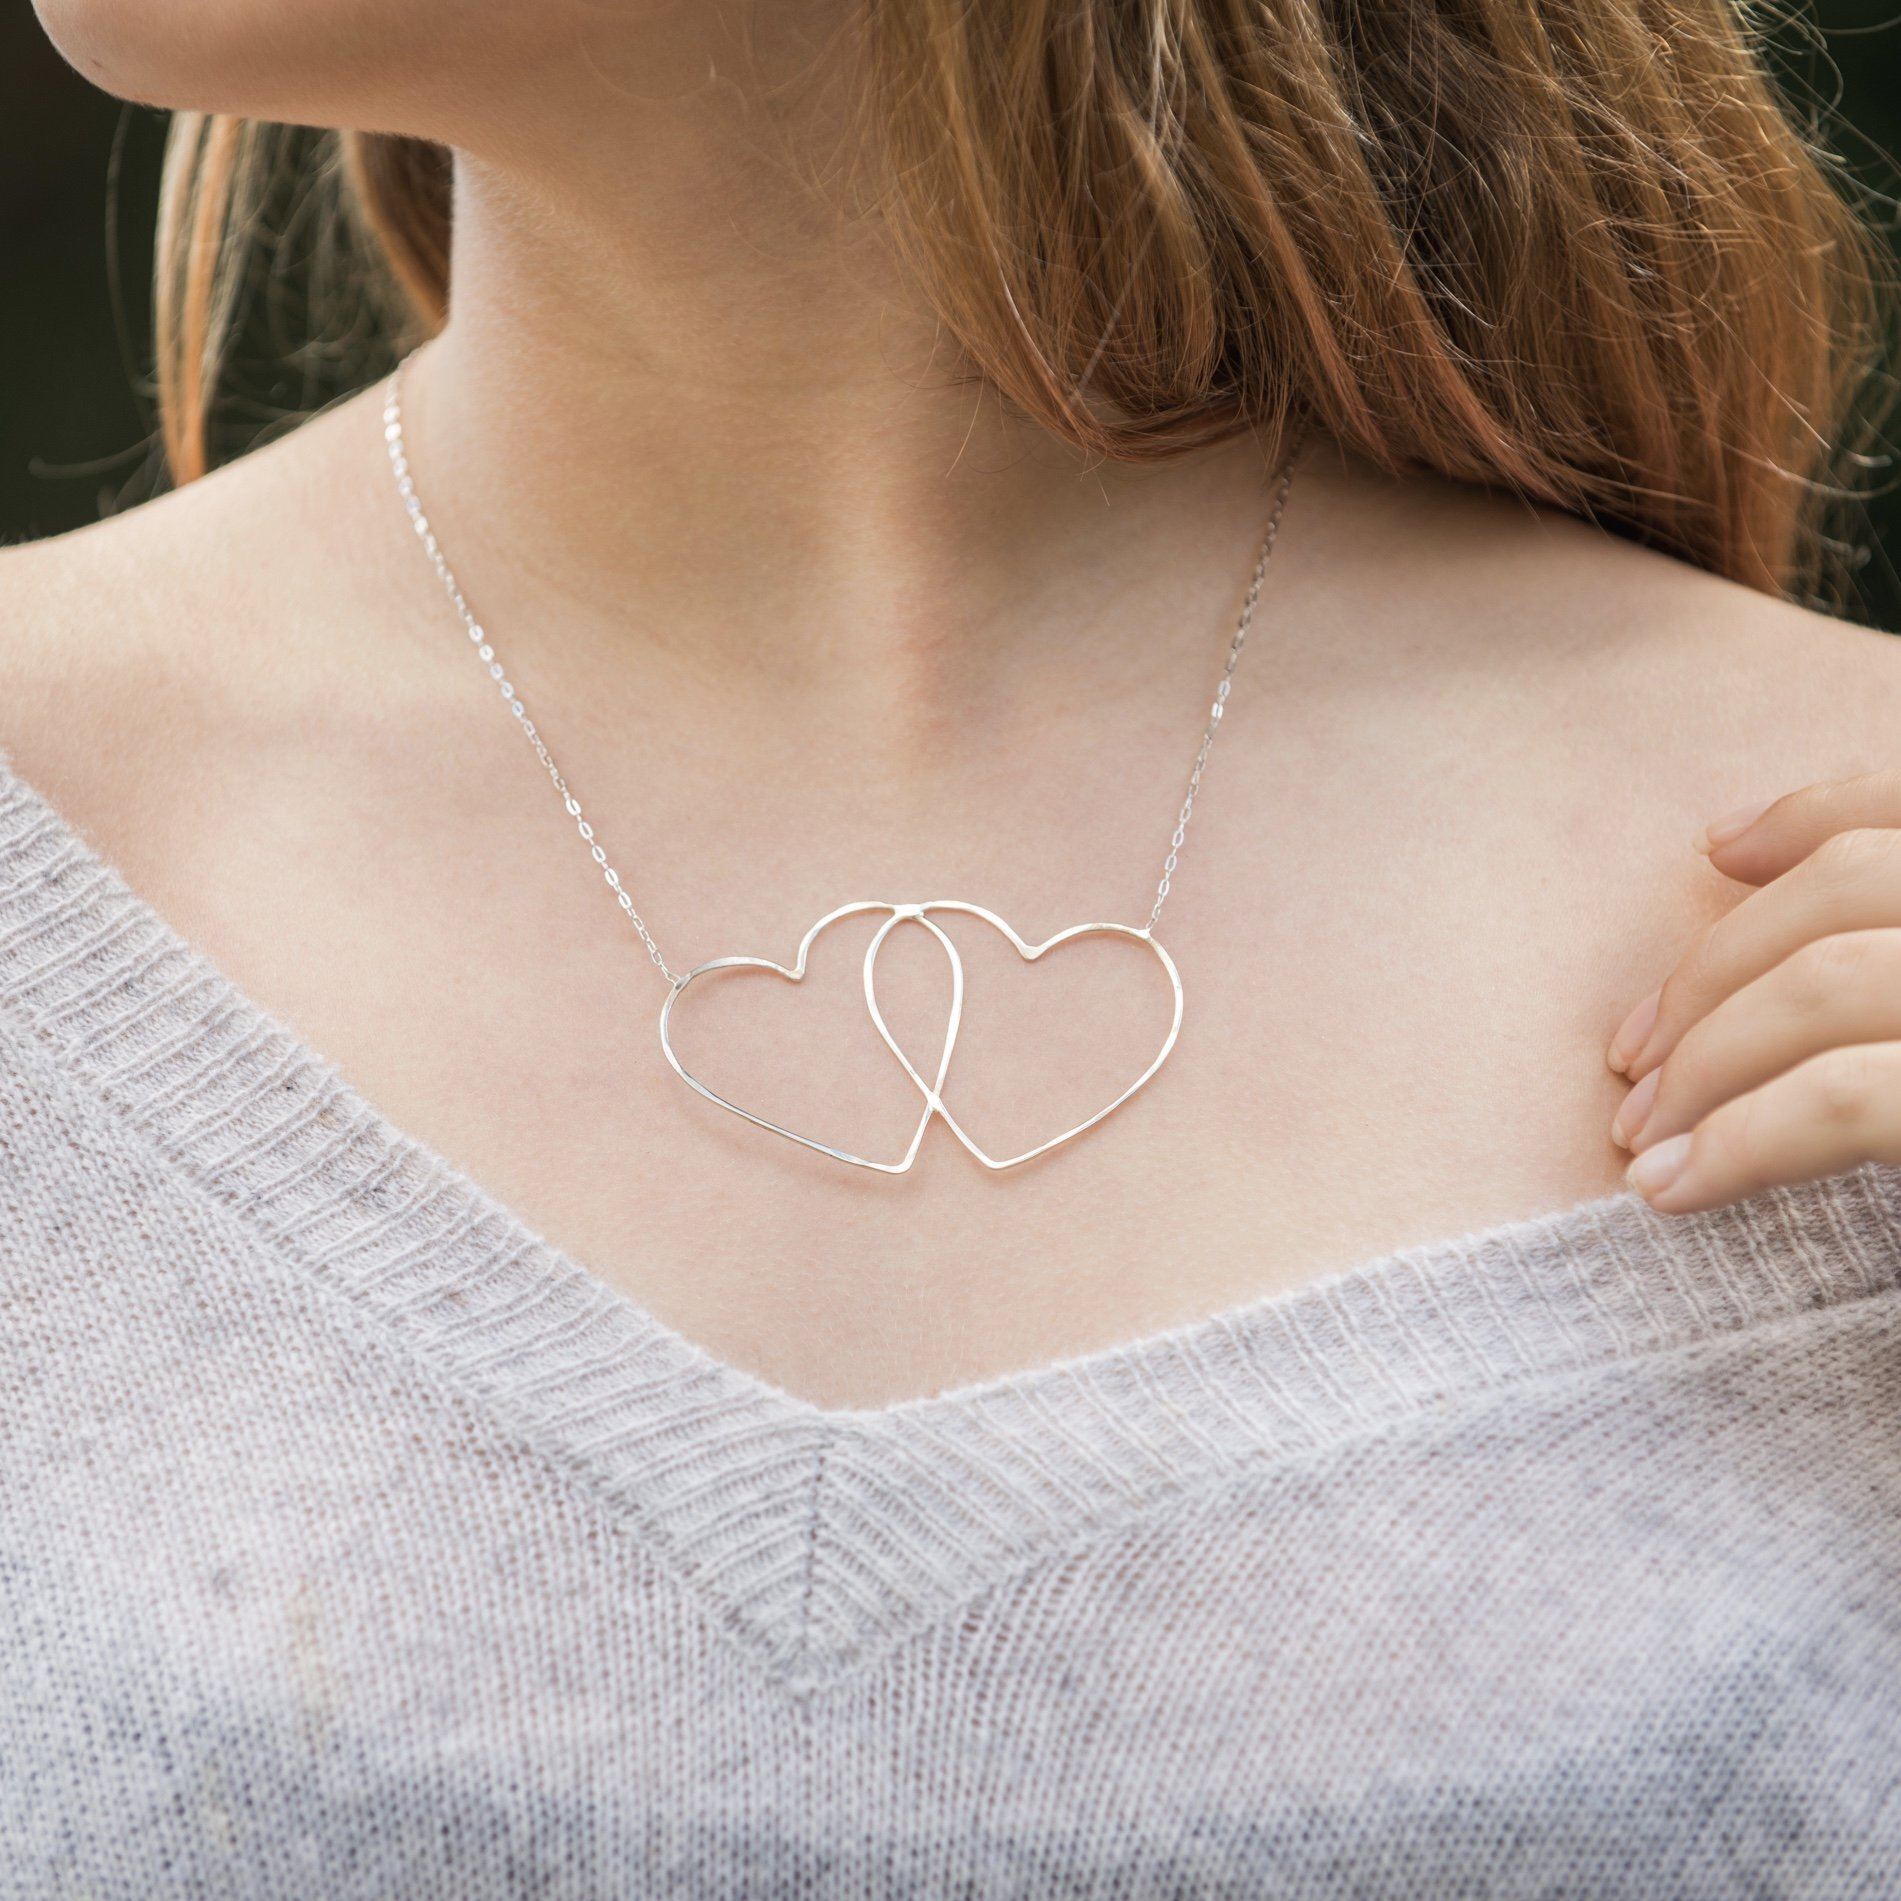 You may also like - Lisa Rueff Double Love Necklace